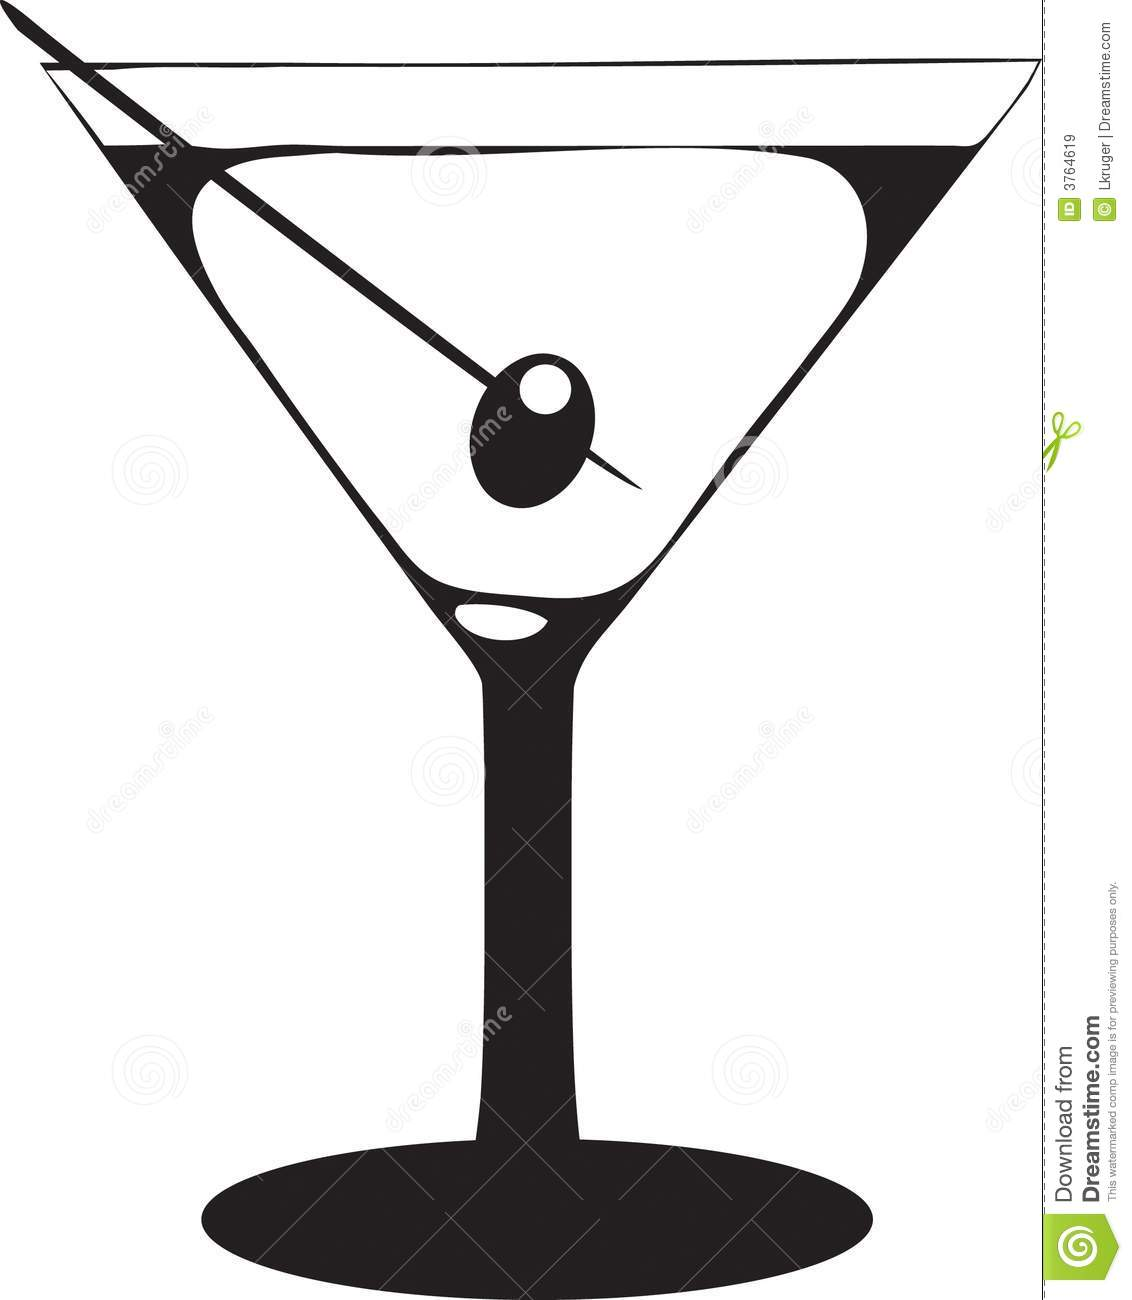 Martini Glass With Olive Royalty Free St-Martini Glass With Olive Royalty Free Stock Images Image 3764619-16